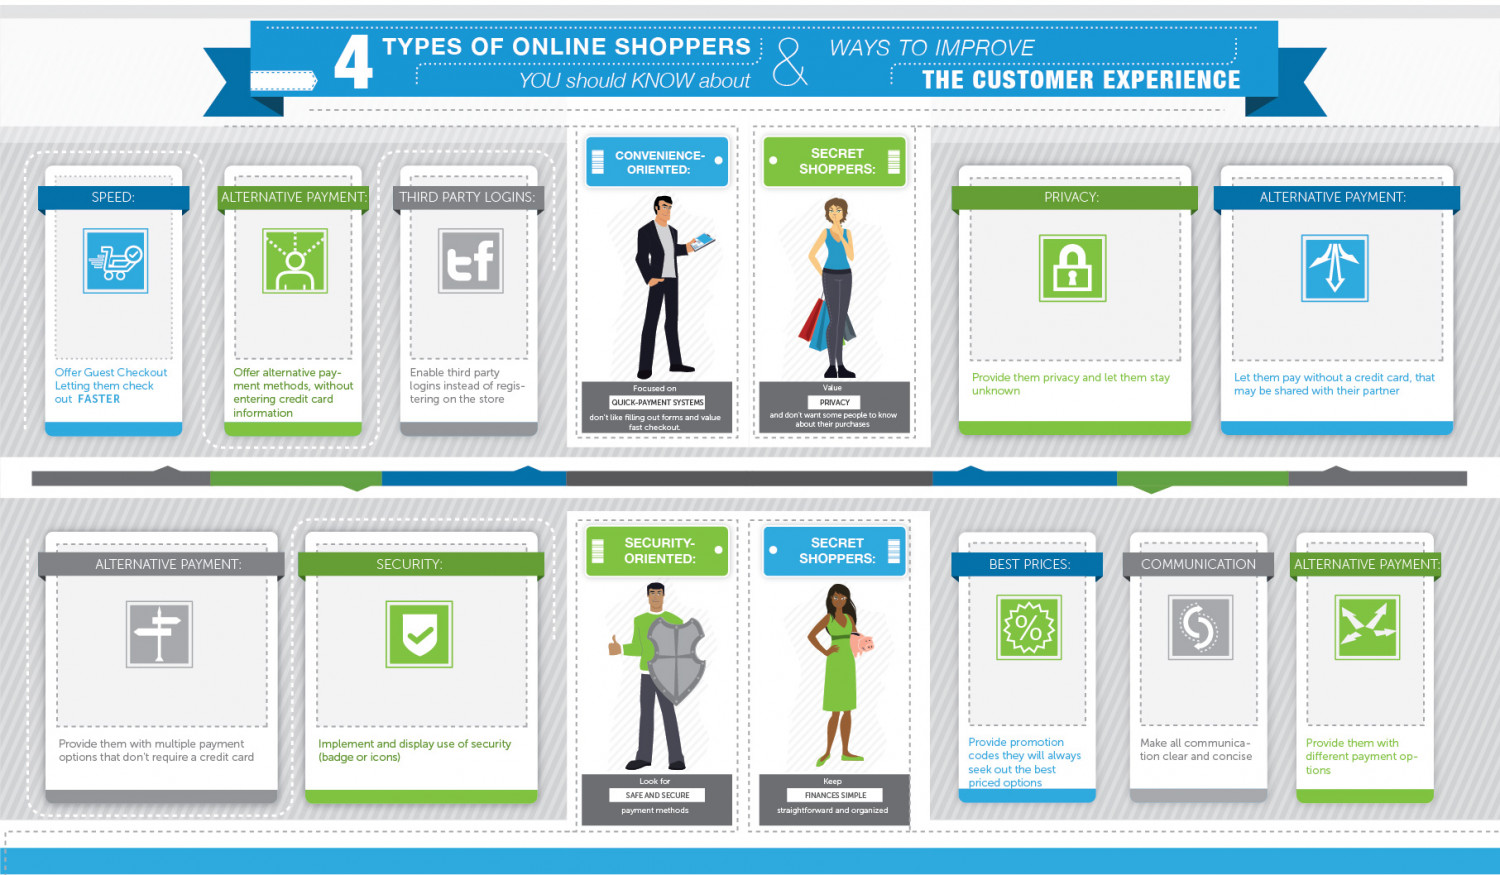 4 Types of Online Shoppers Infographic